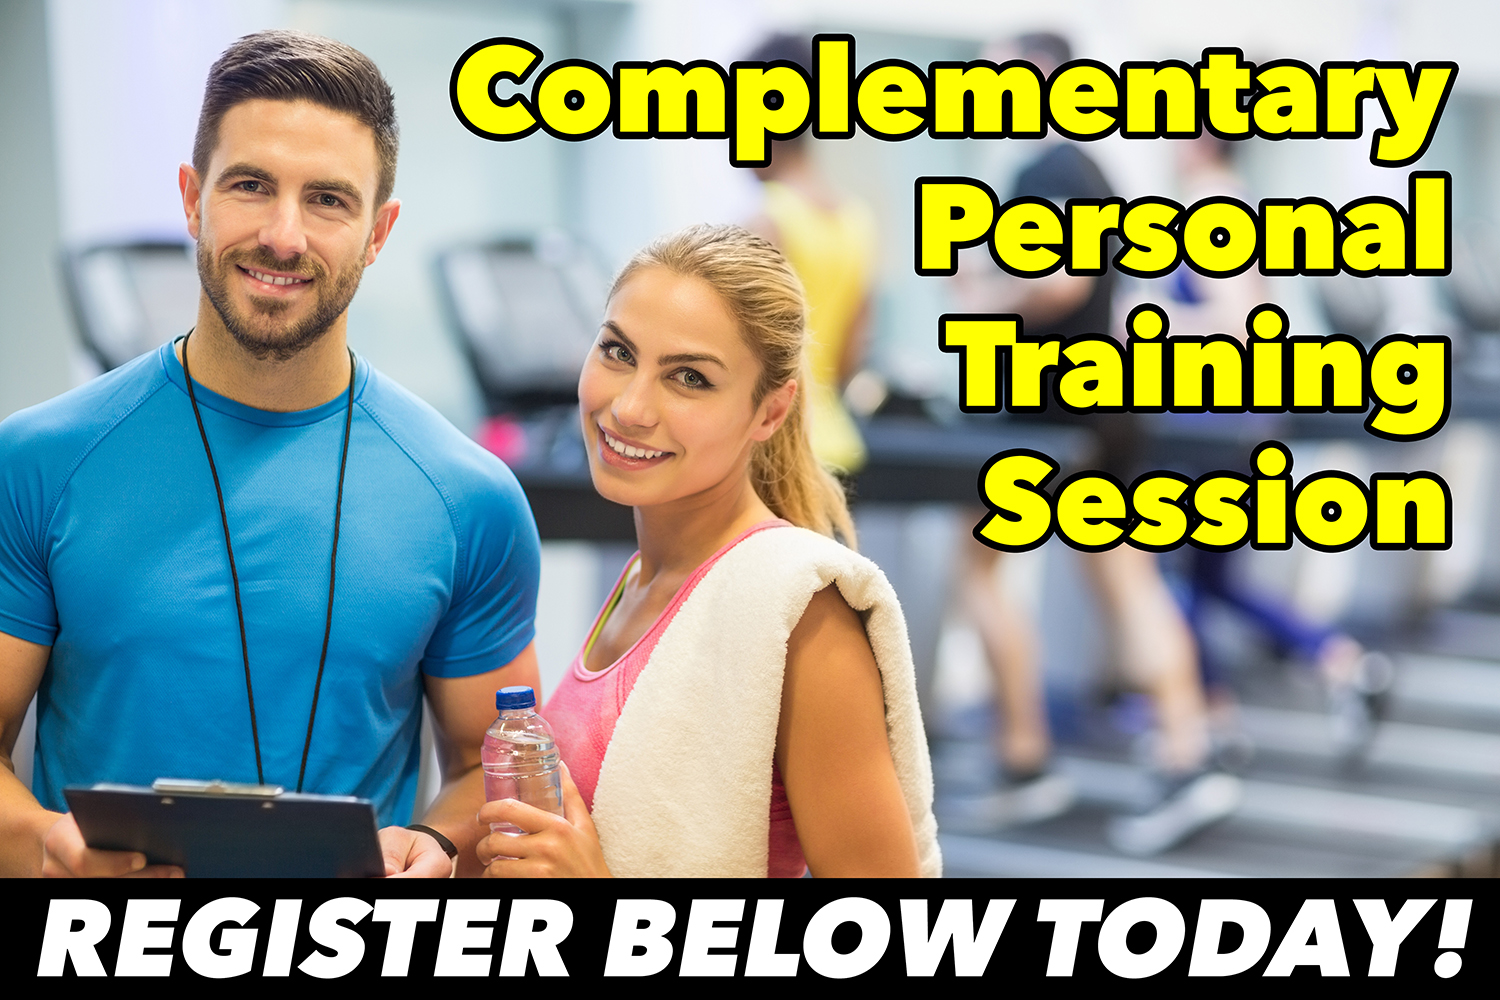 Complementary Personal Training Session